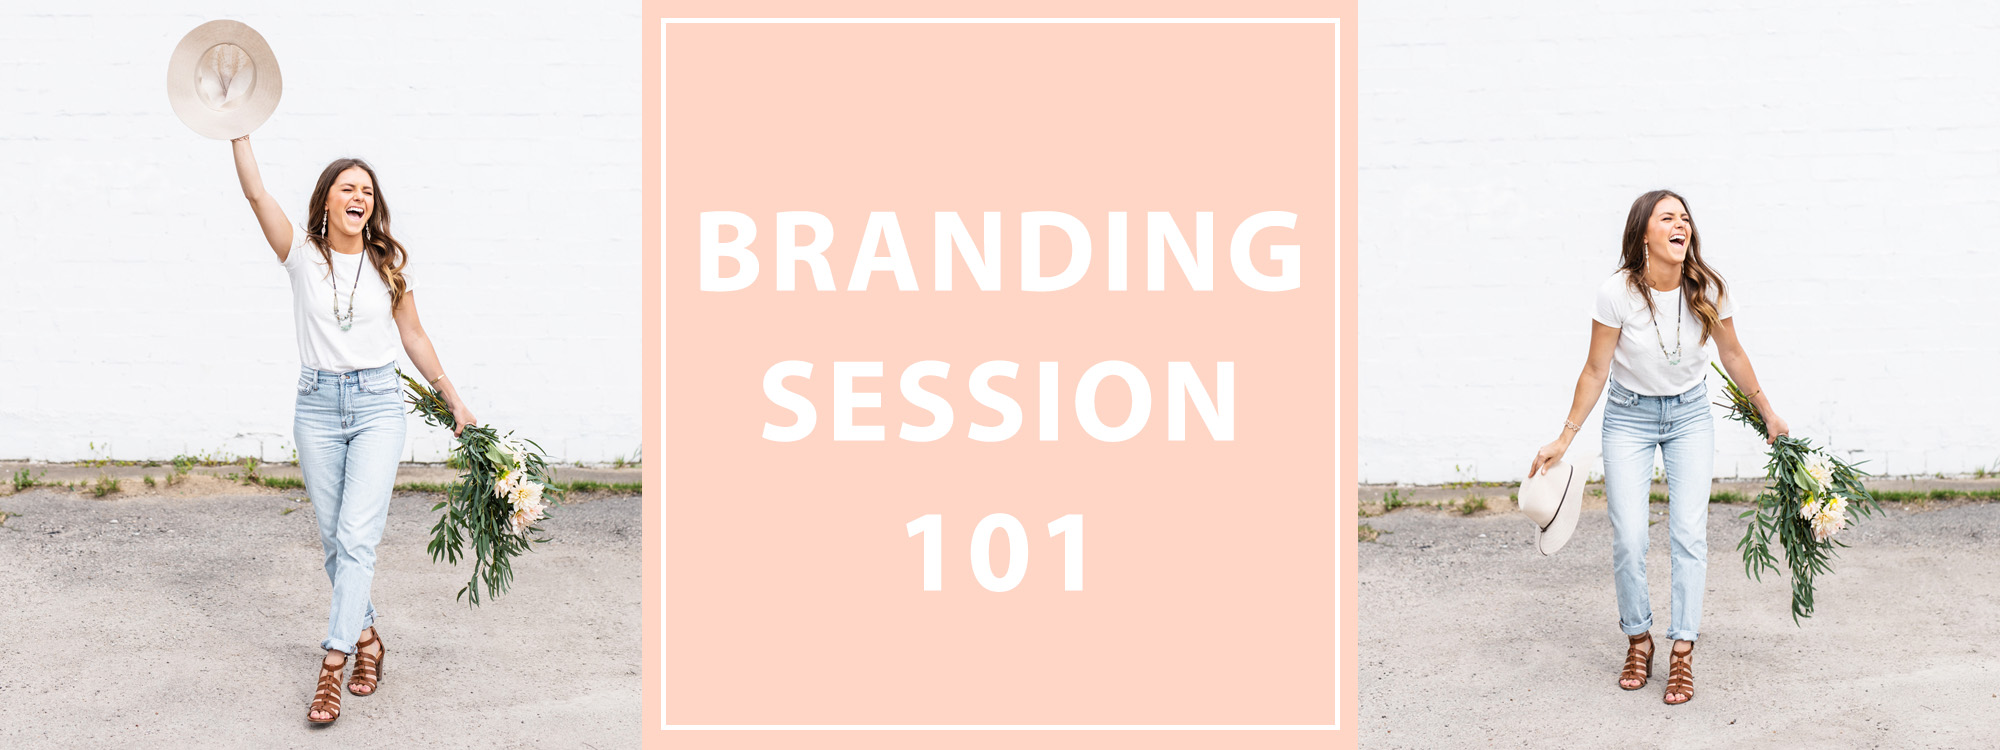 4 Things You Need to Focus on For Your Branding Session